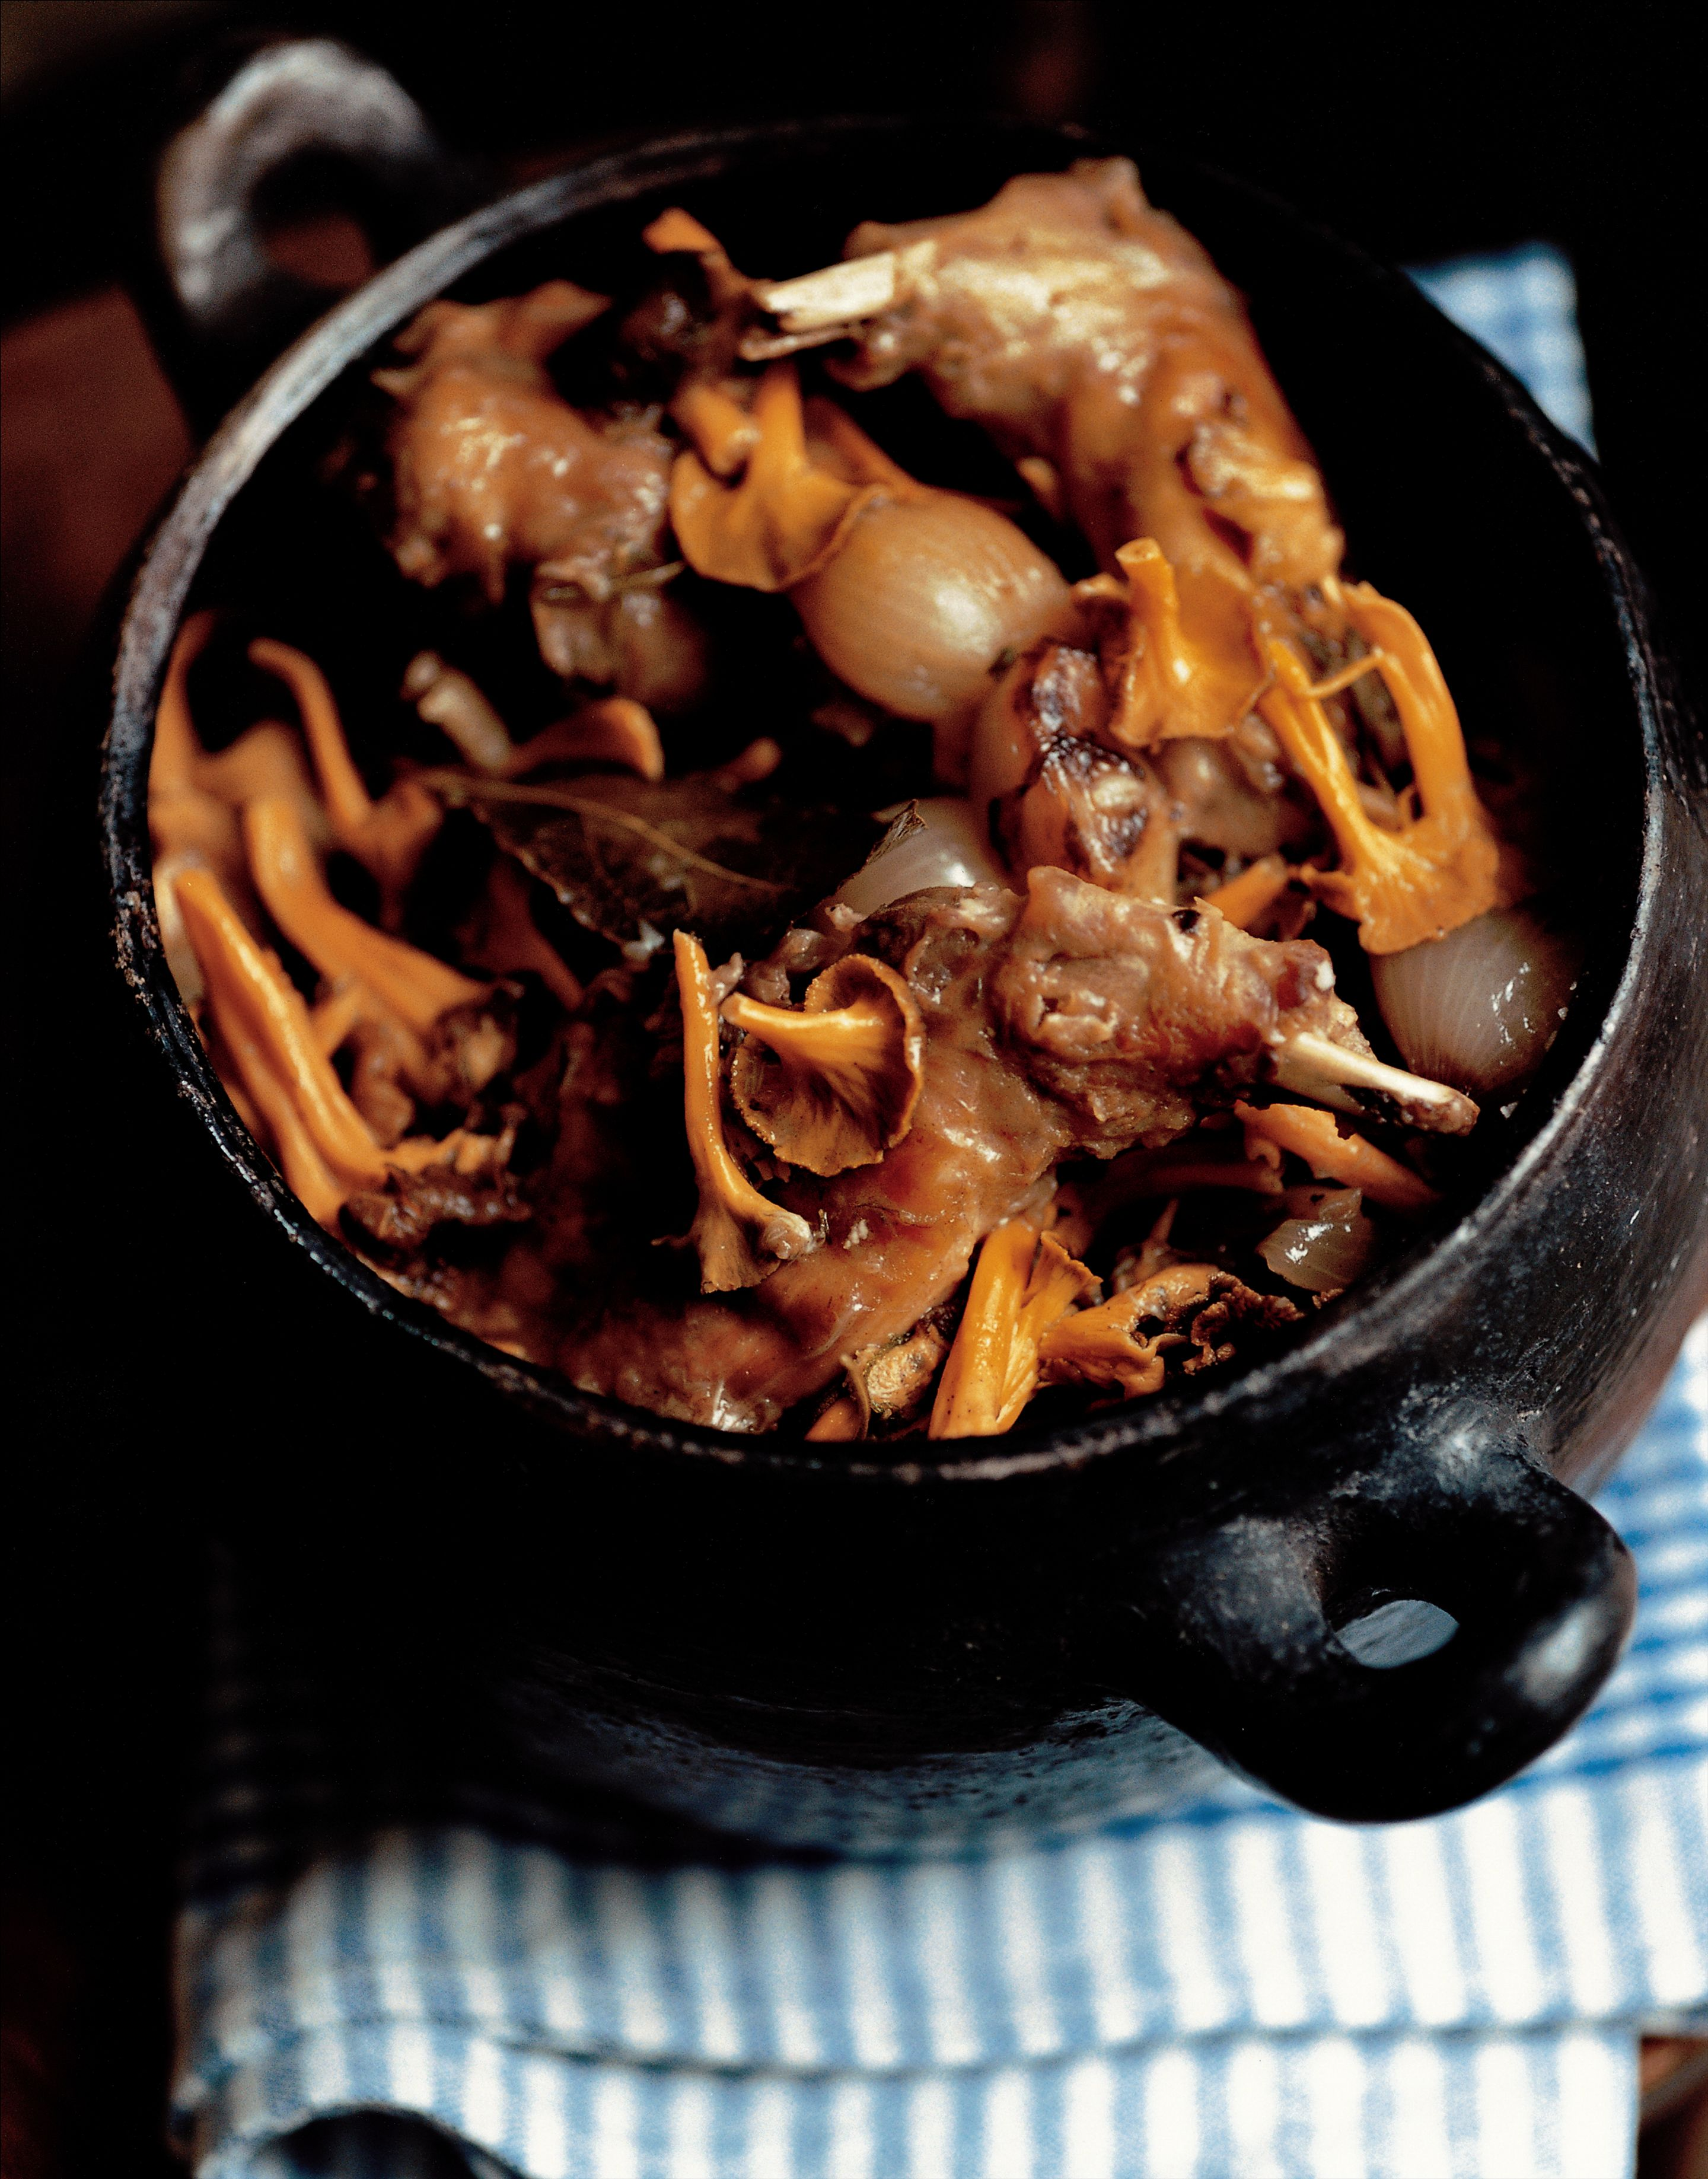 Rabbit casserole with winter chanterelles